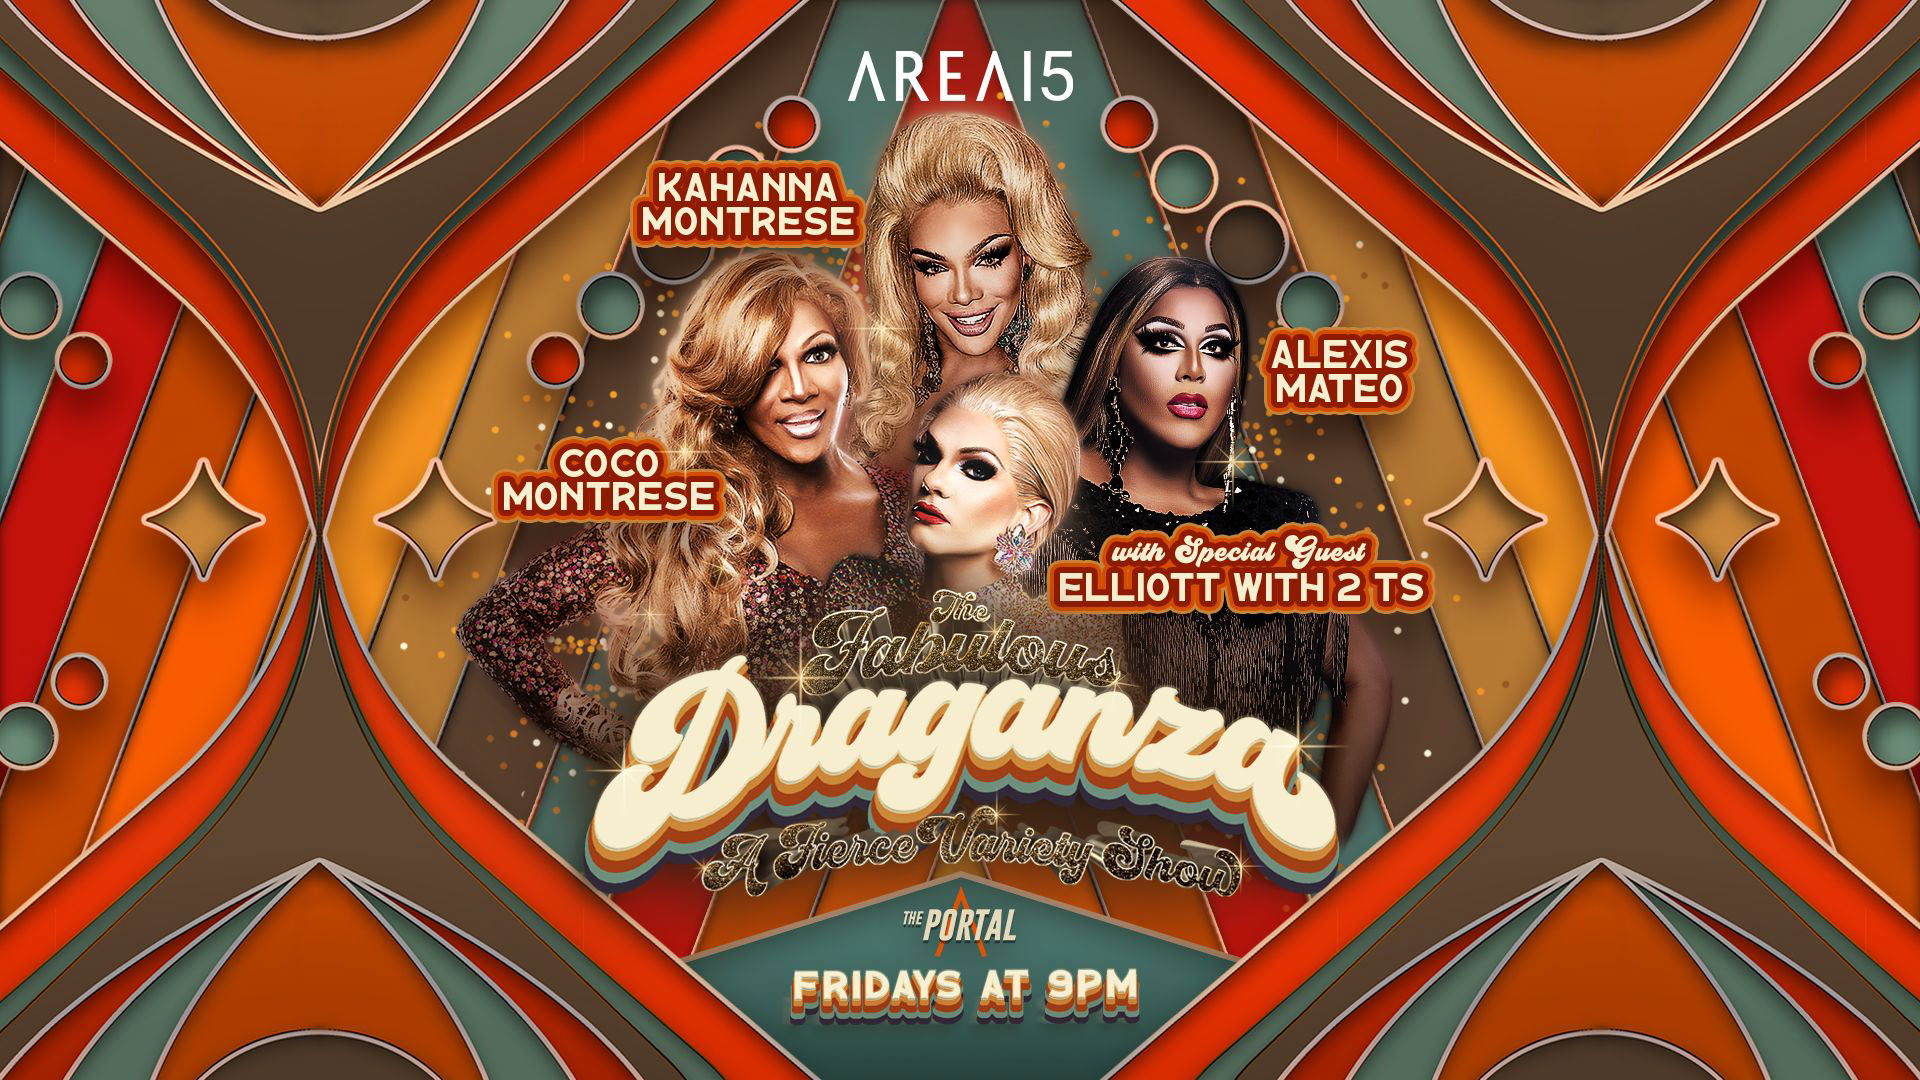 Draganza: A FIERCE VARIETY SHOW, Event, Off The Strip